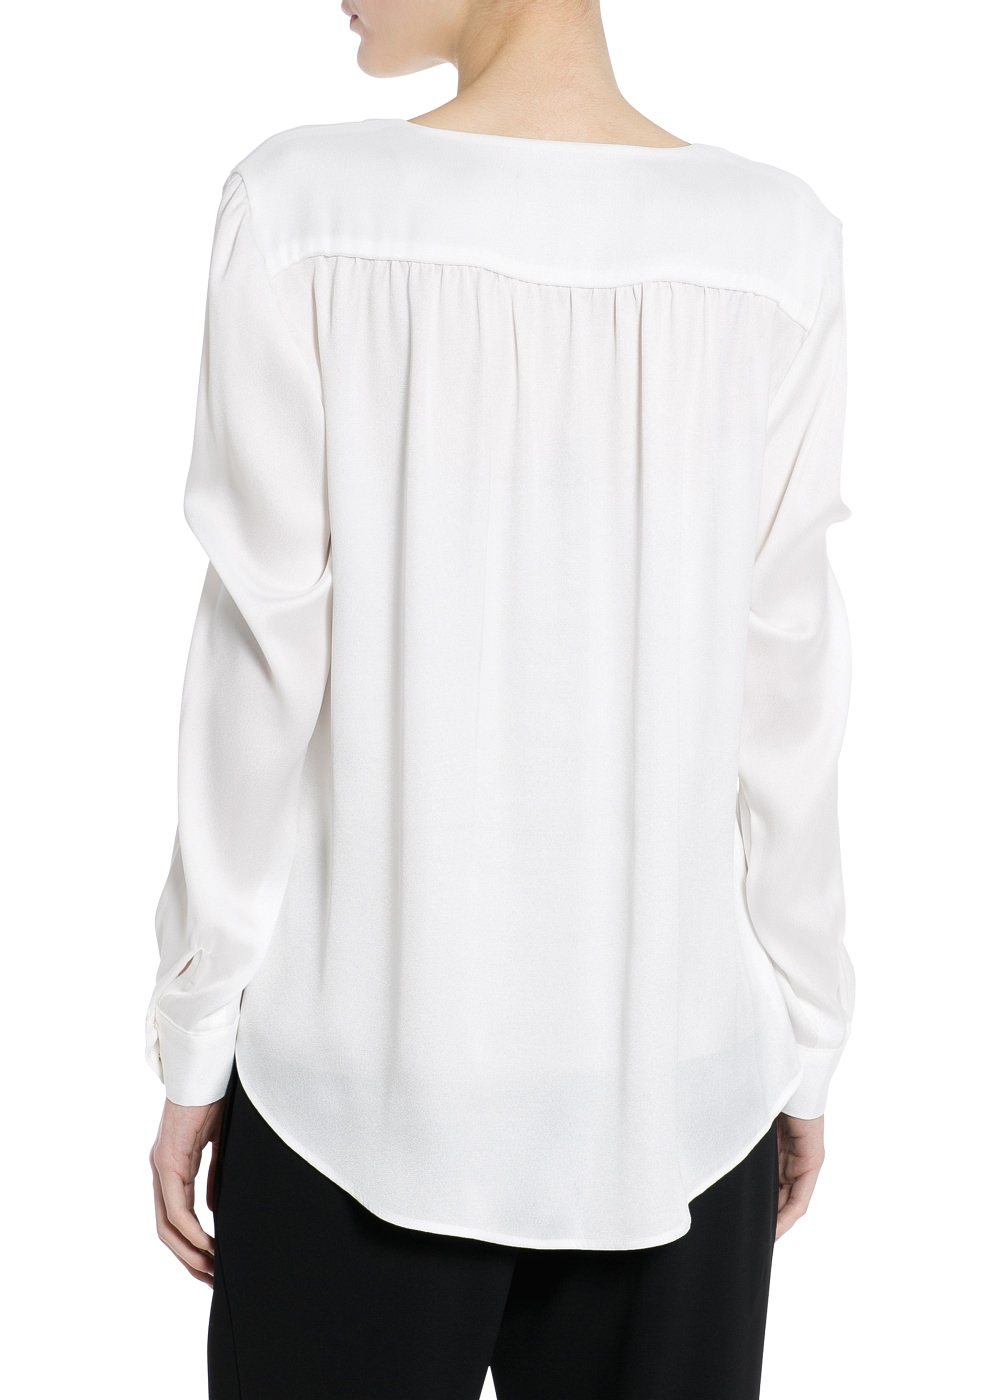 V-neckline blouse -  							Blouses and shirts - 							Women - 							MANGO